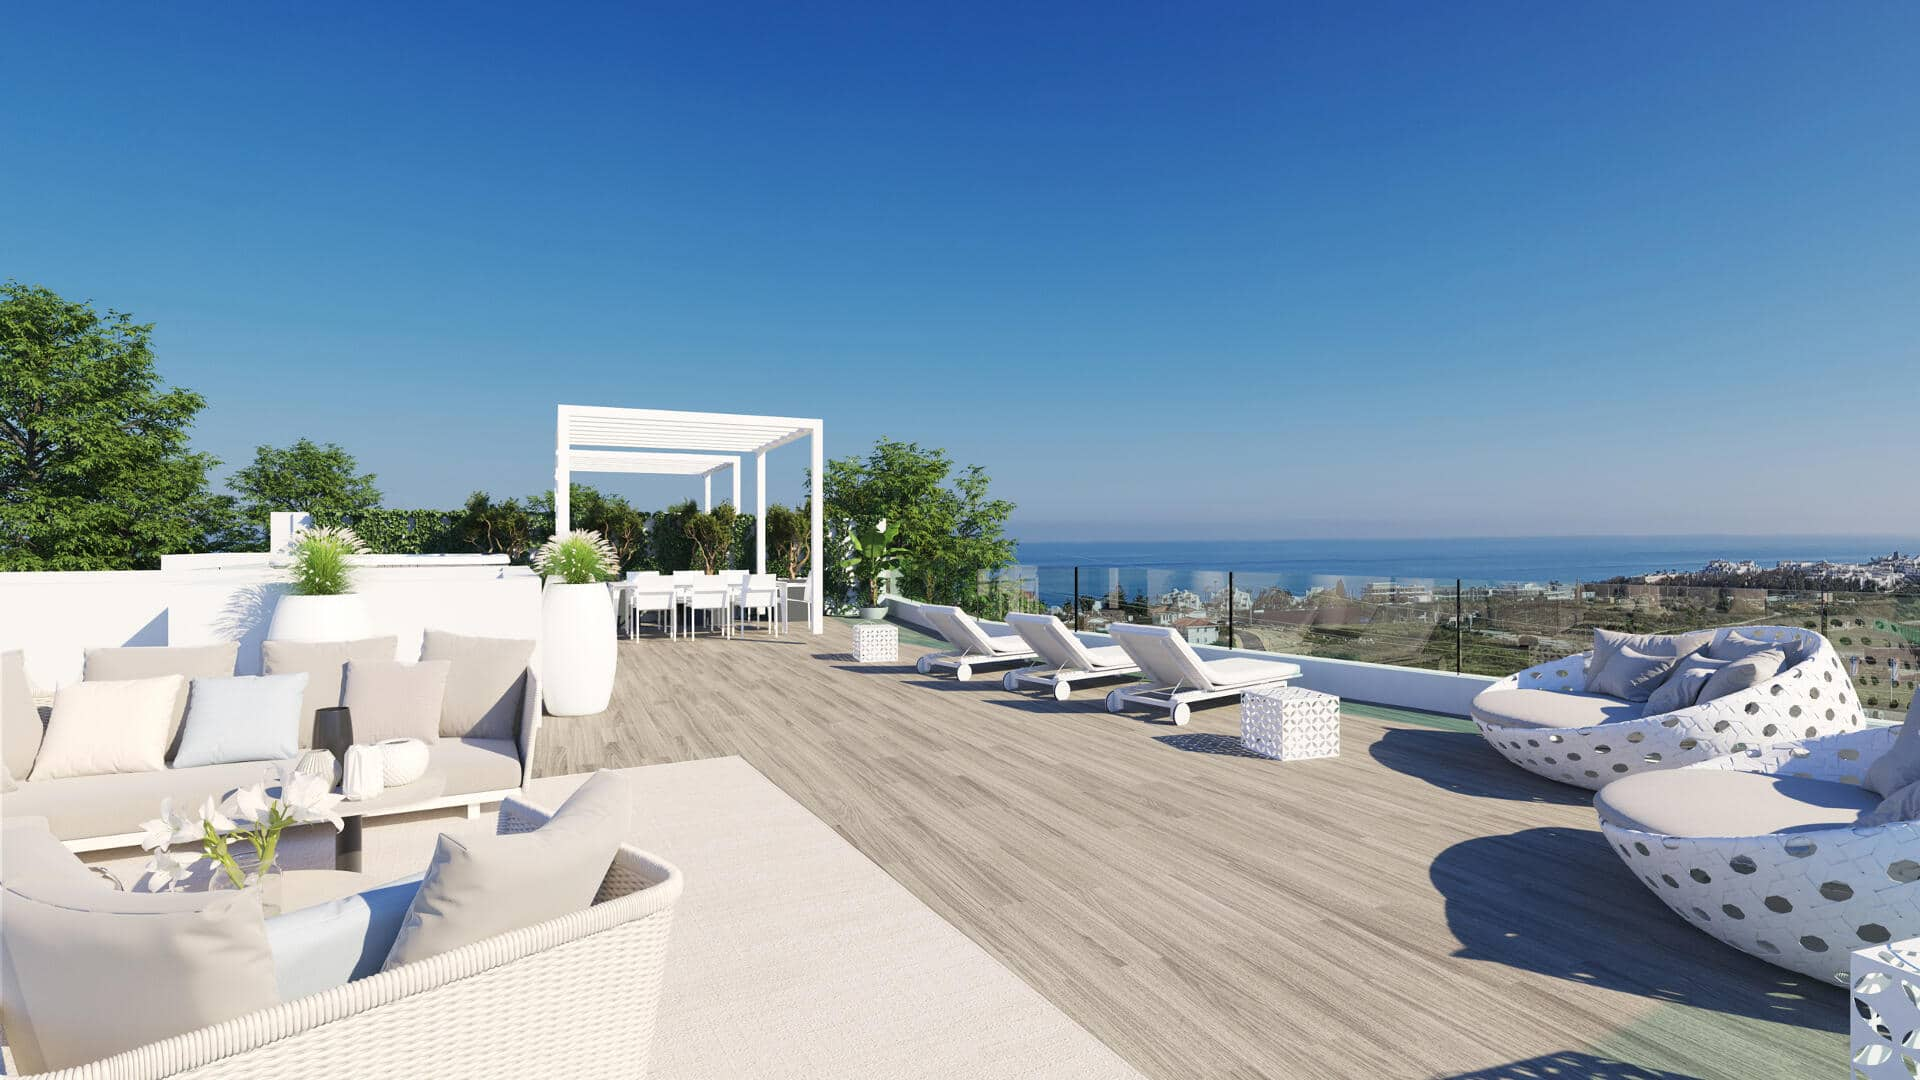 Sea view Estepona duplex penthouse with three bedrooms and large terrace in One 80 Residence